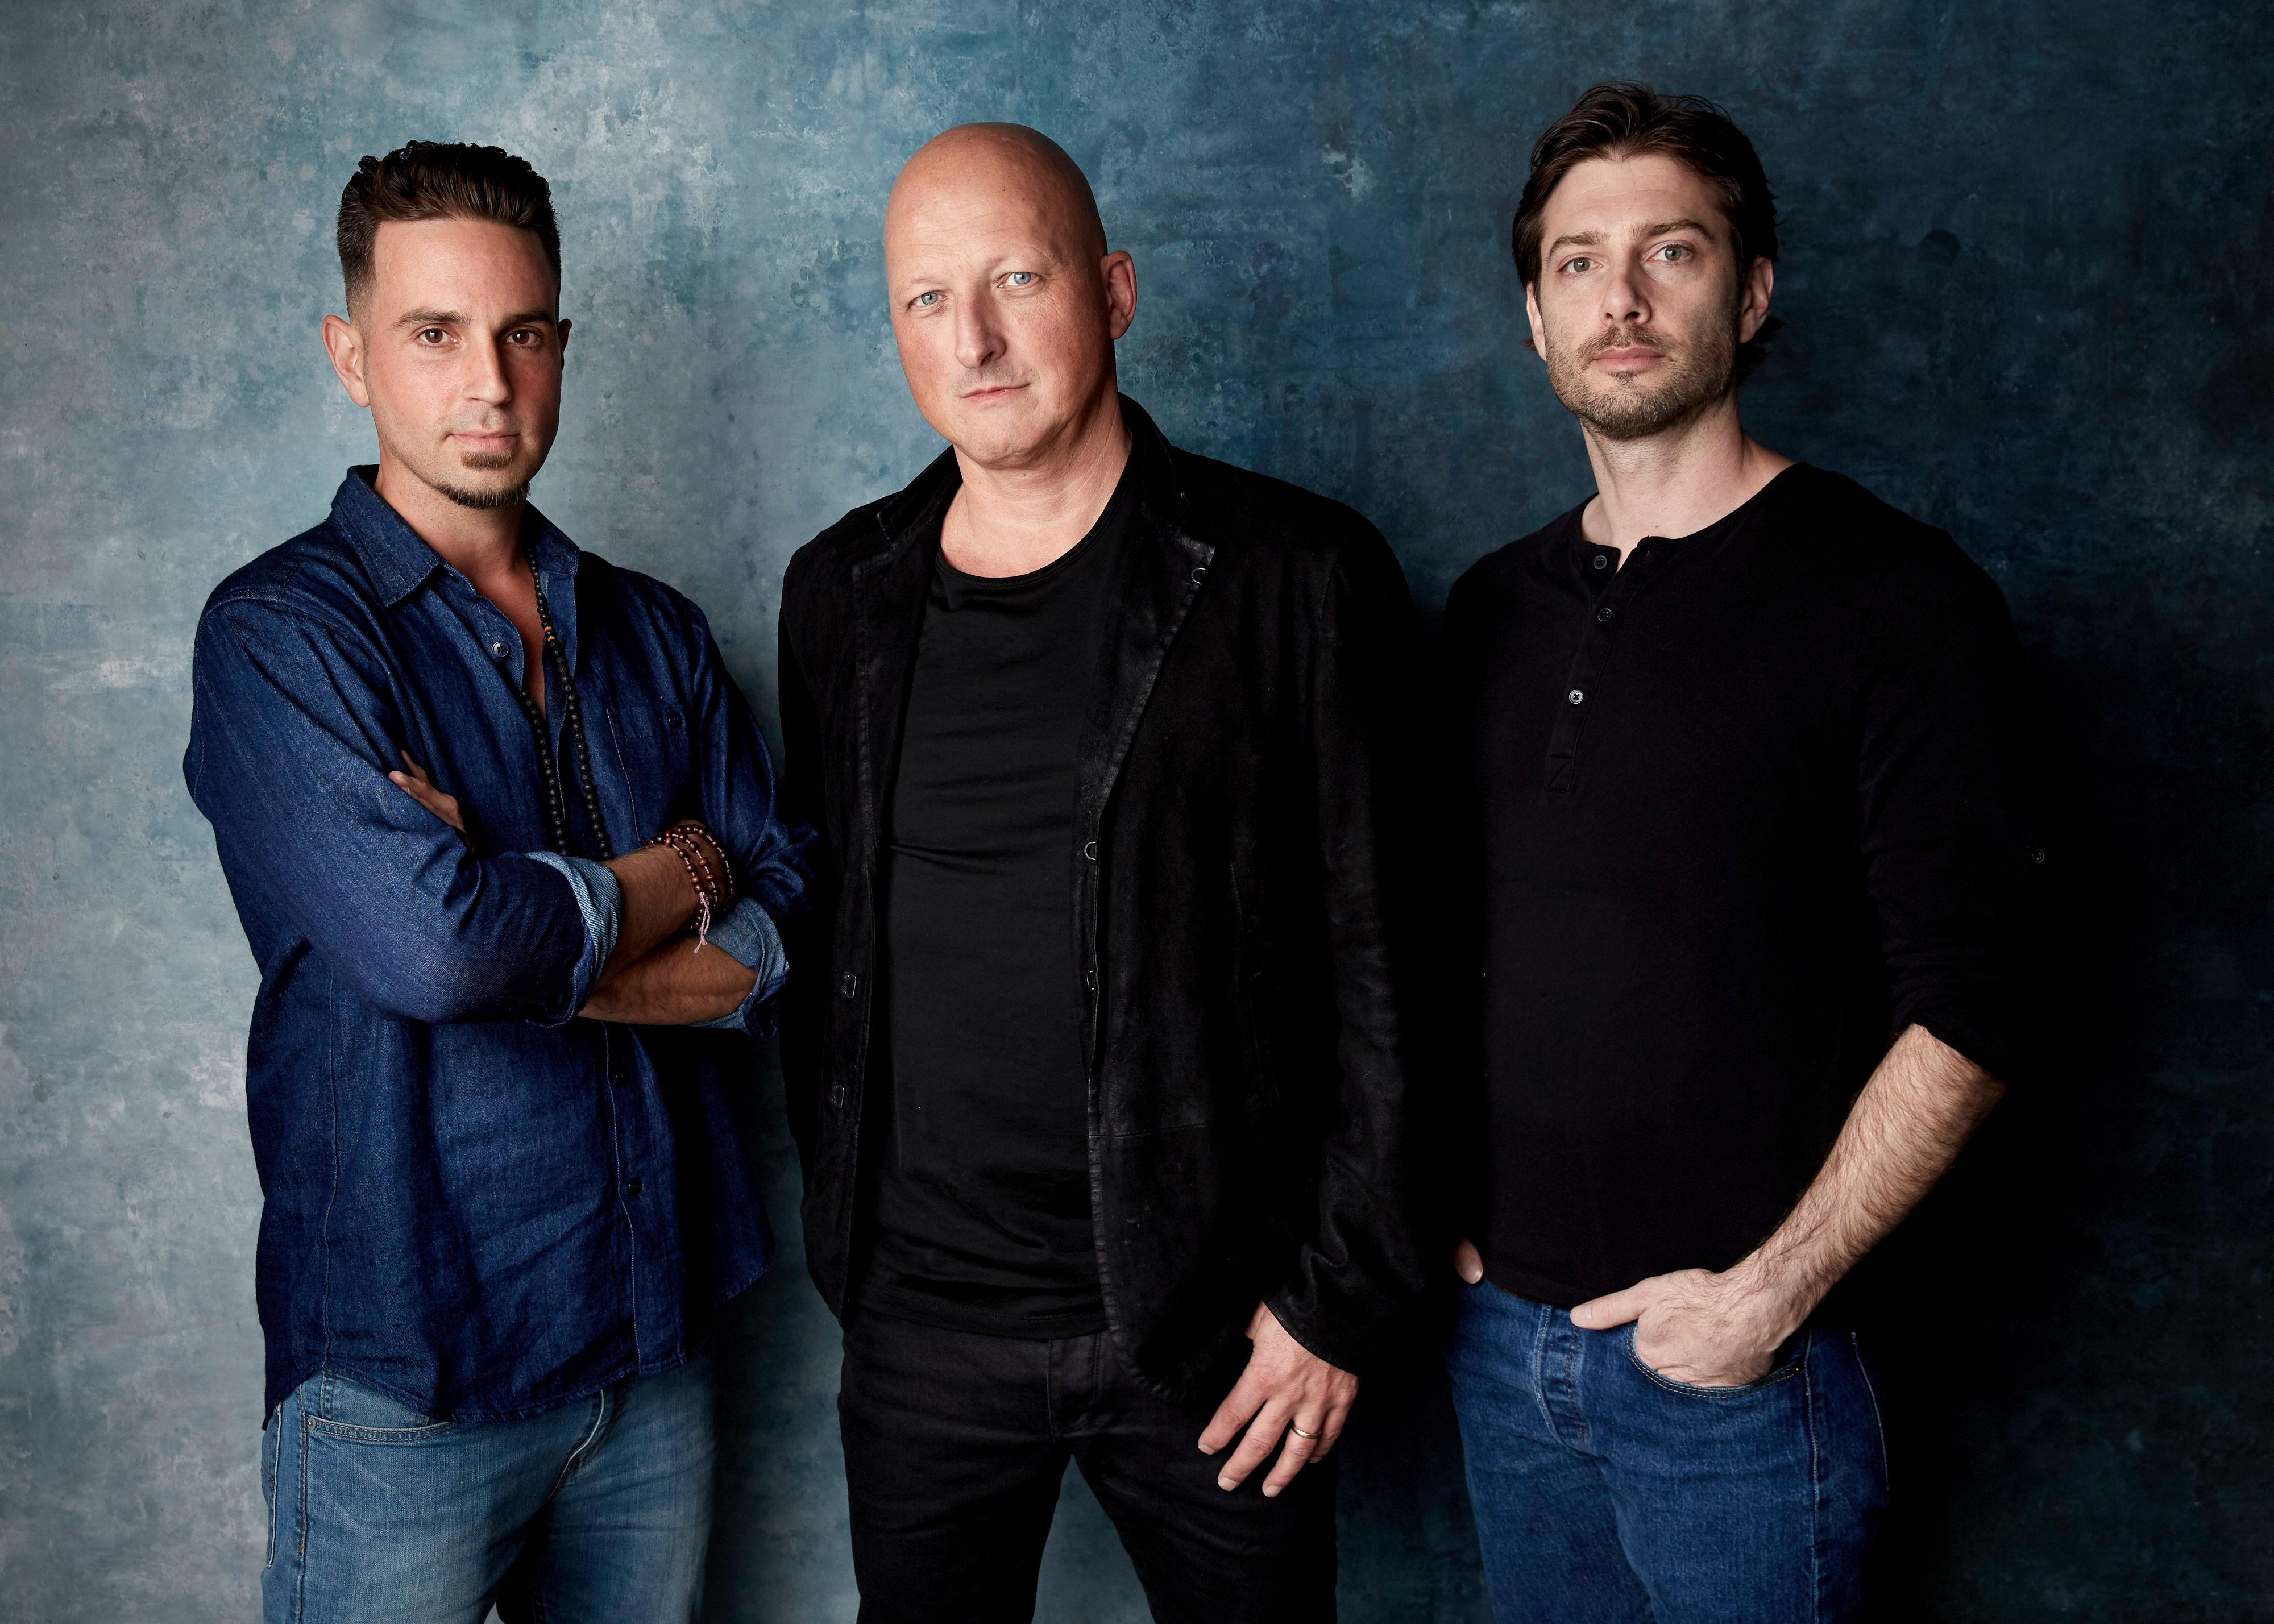 """Wade Robson, Dan Reed, James Safechuck. Wade Robson, from left, director Dan Reed and James Safechuck pose for a portrait to promote the film """"Leaving Neverland"""" at the Salesforce Music Lodge during the Sundance Film Festival, in Park City, Utah2019 Sundance Film Festival - """"Leaving Neverland"""" Portrait Session, Park City, USA - 24 Jan 2019"""